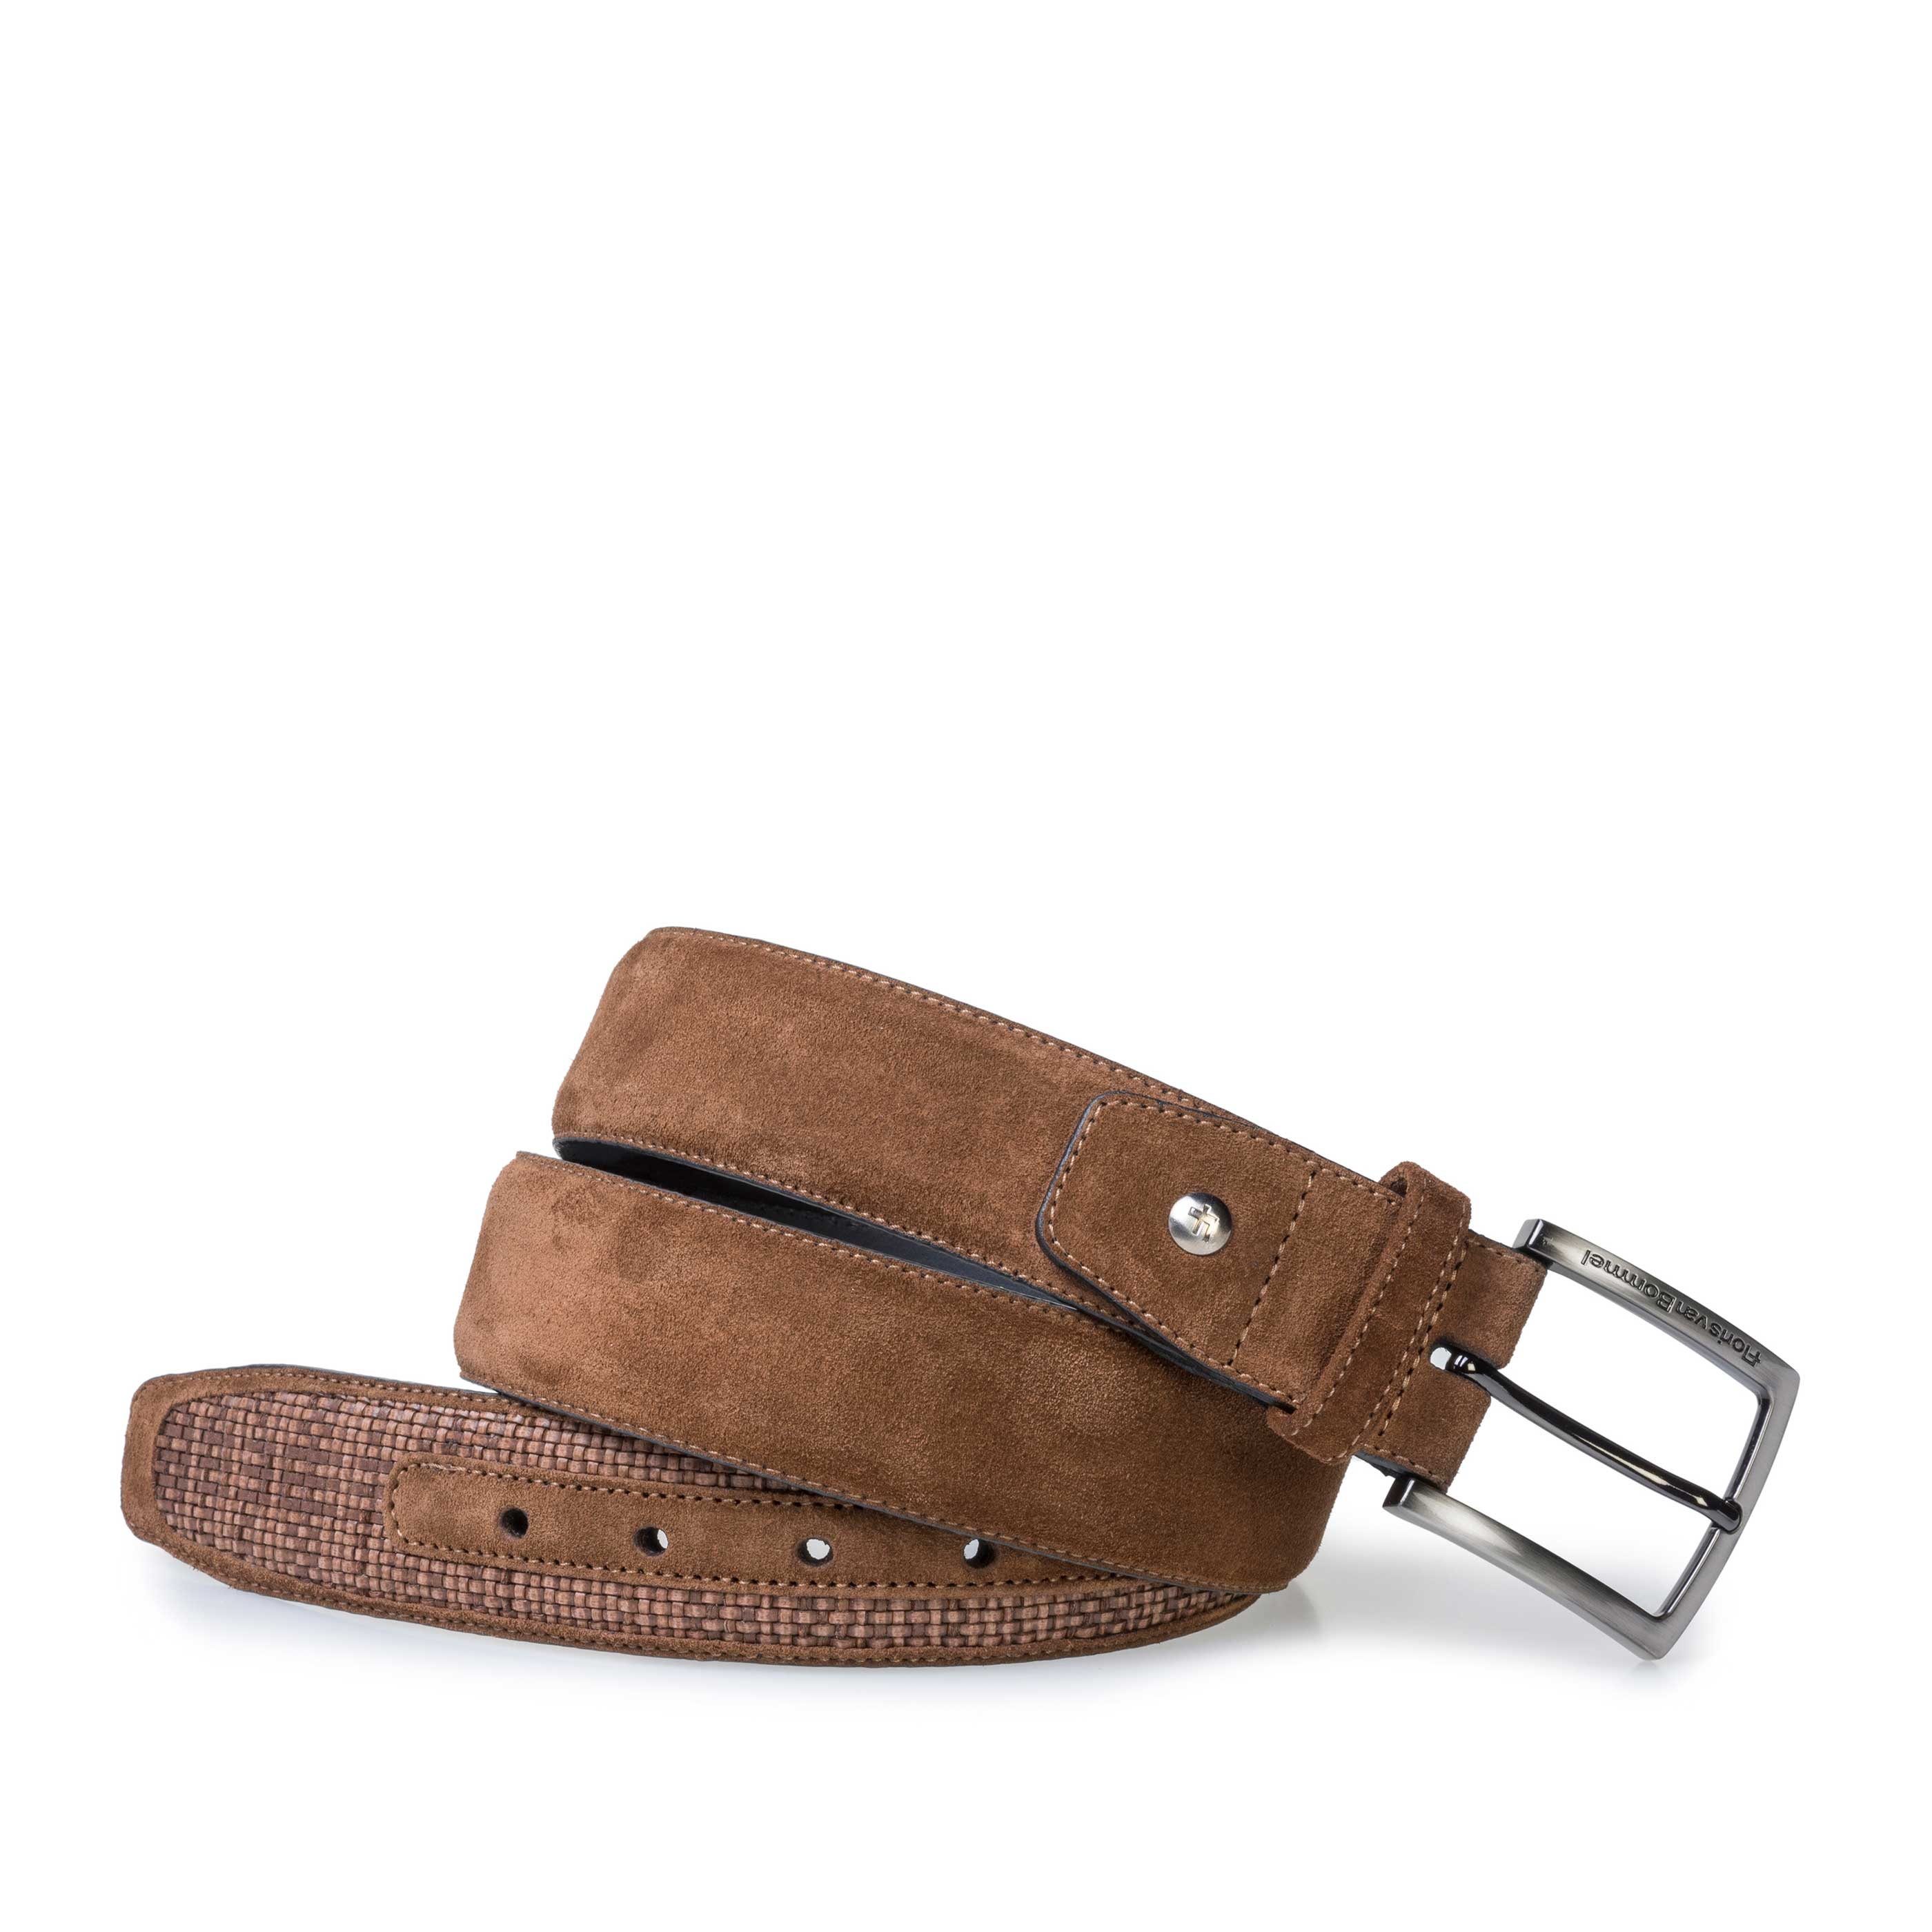 75159/29 - Brown braided suede leather belt